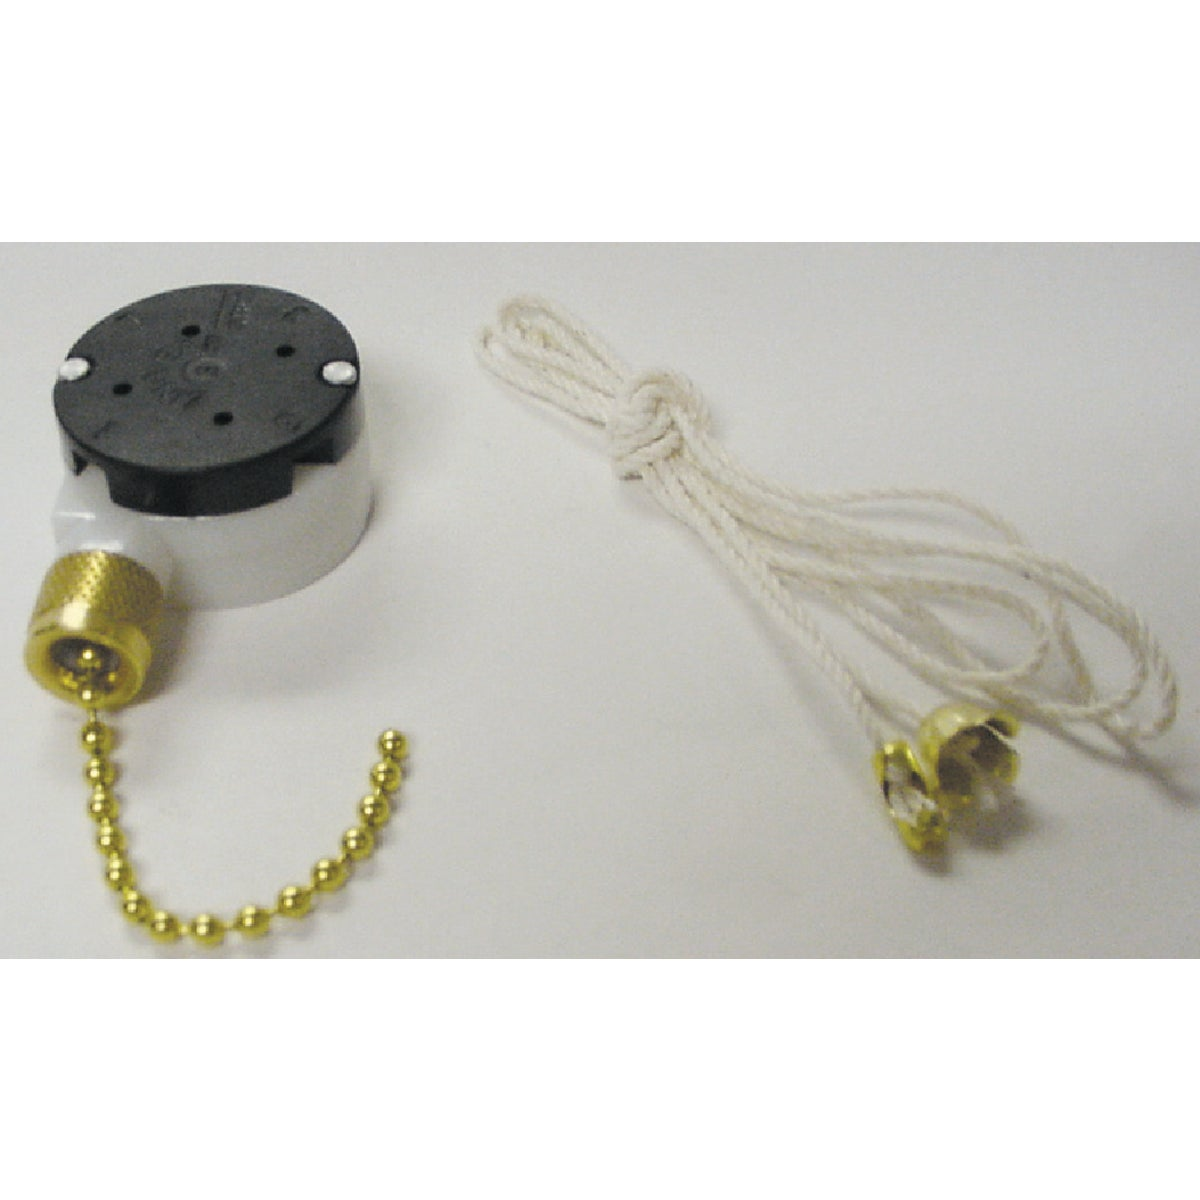 3SPEED PULL CHAIN SWITCH